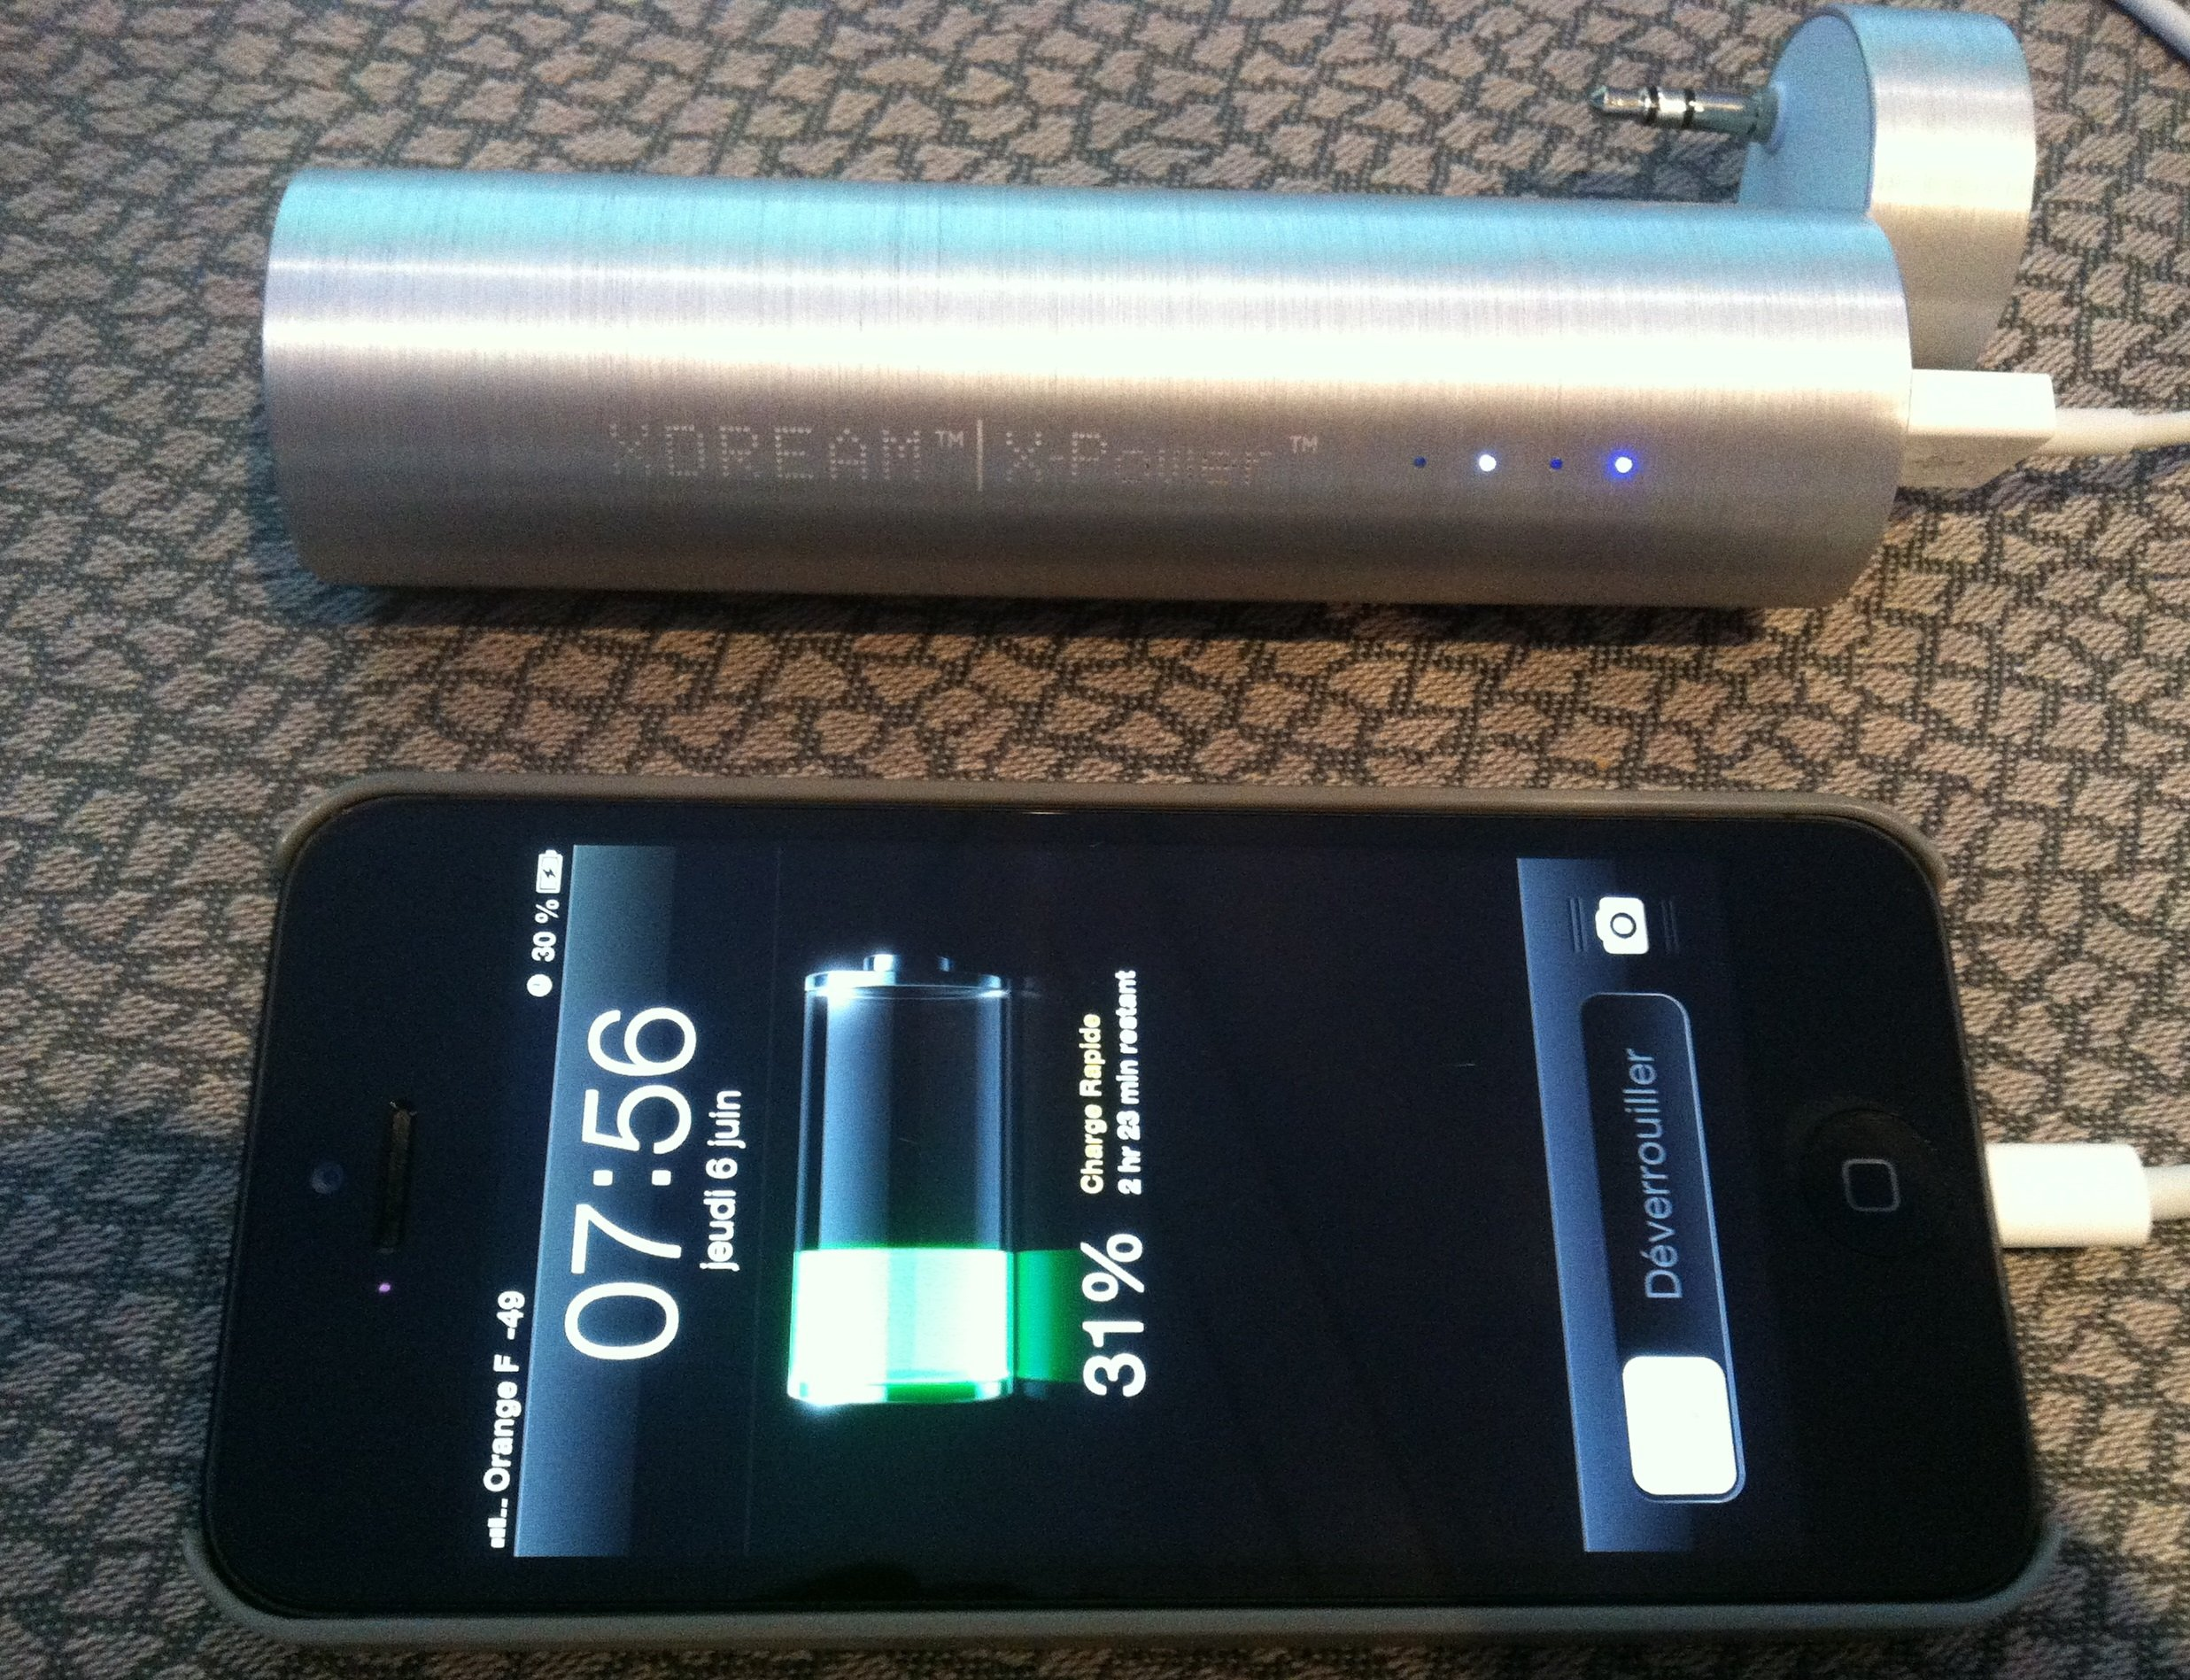 xpower3 - Test X-Power 3 en 1 : haut-parleur, batterie de secours et support de visualisation